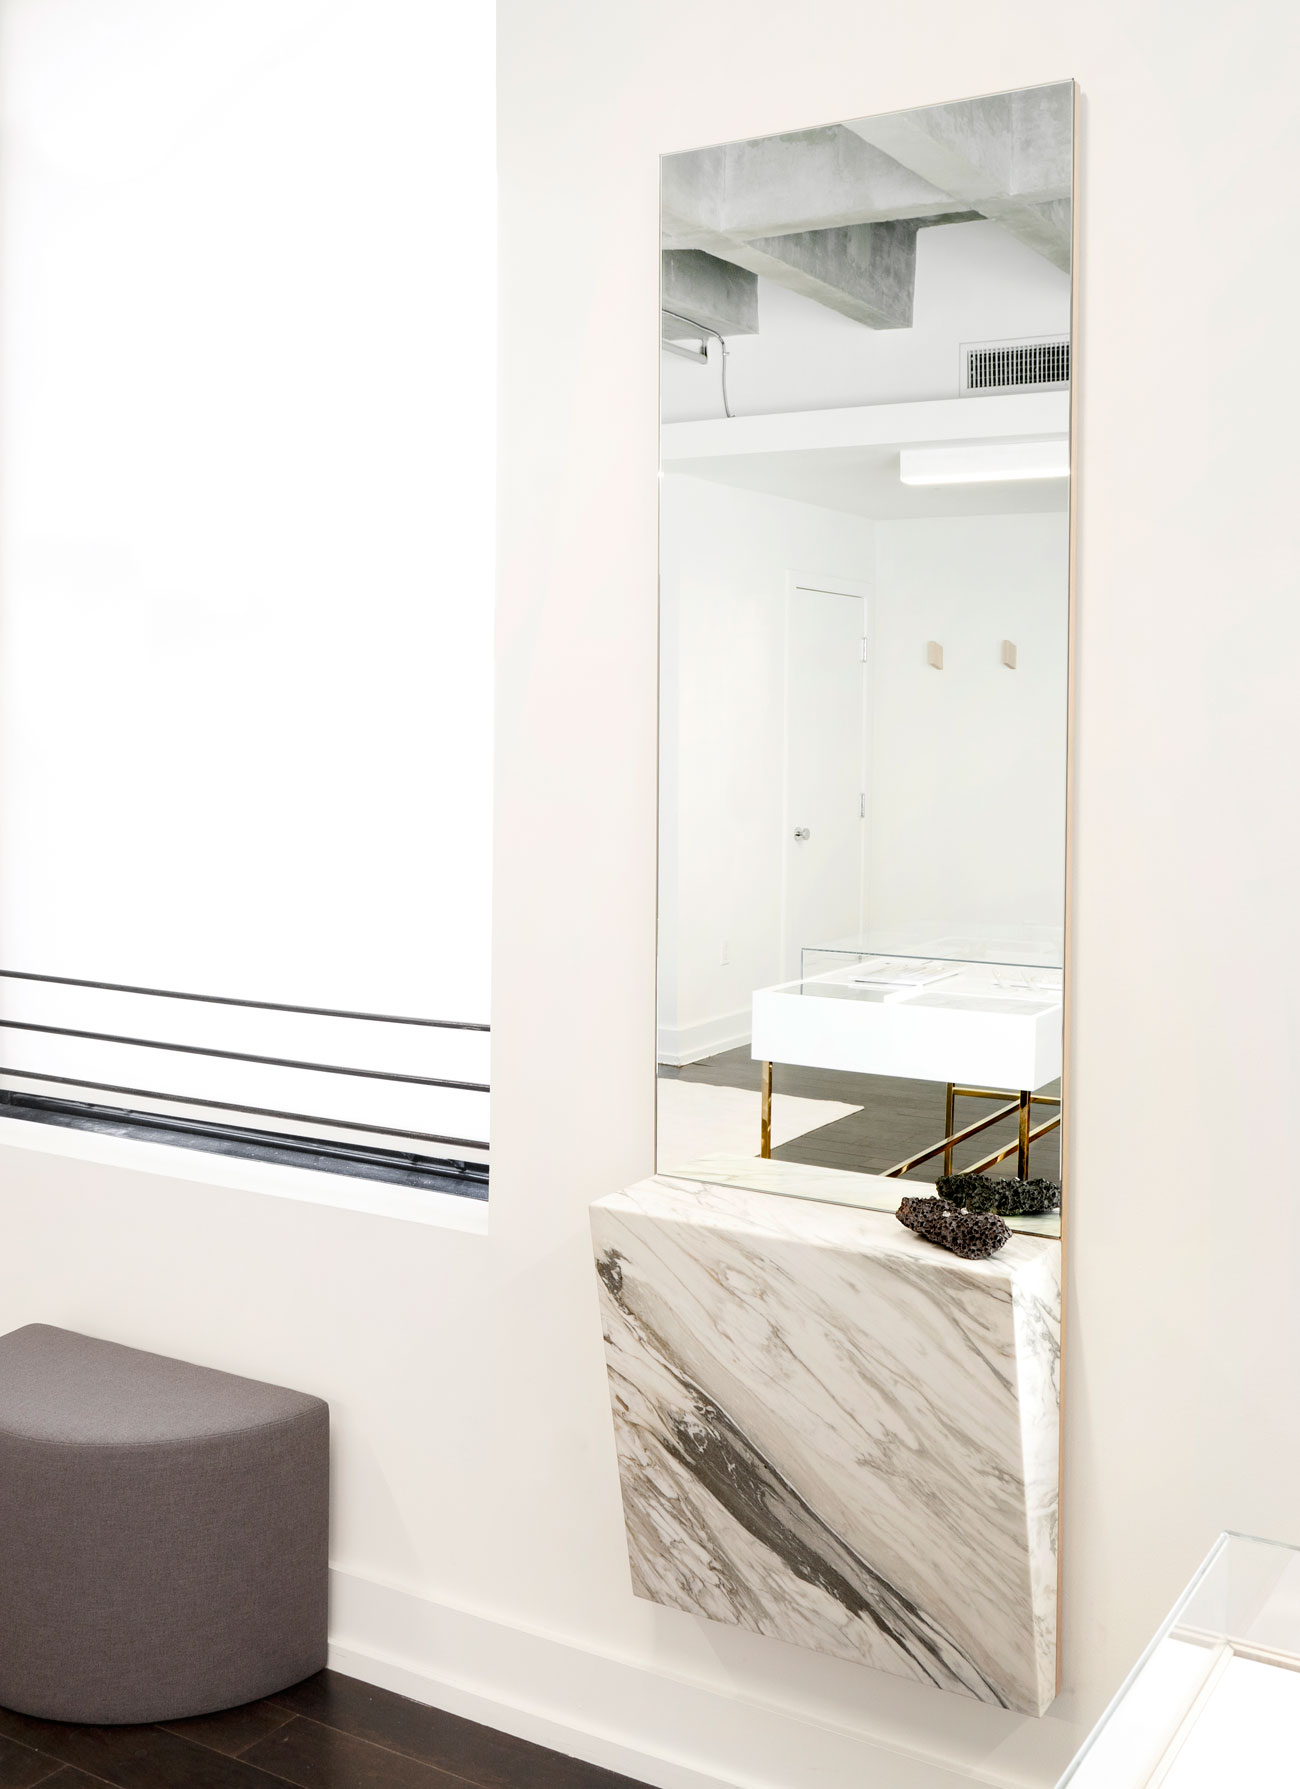 A wedge of Mountain Calcutta marble affixed to the wall-mounted mirror was designed to hold jewelry during fittings.